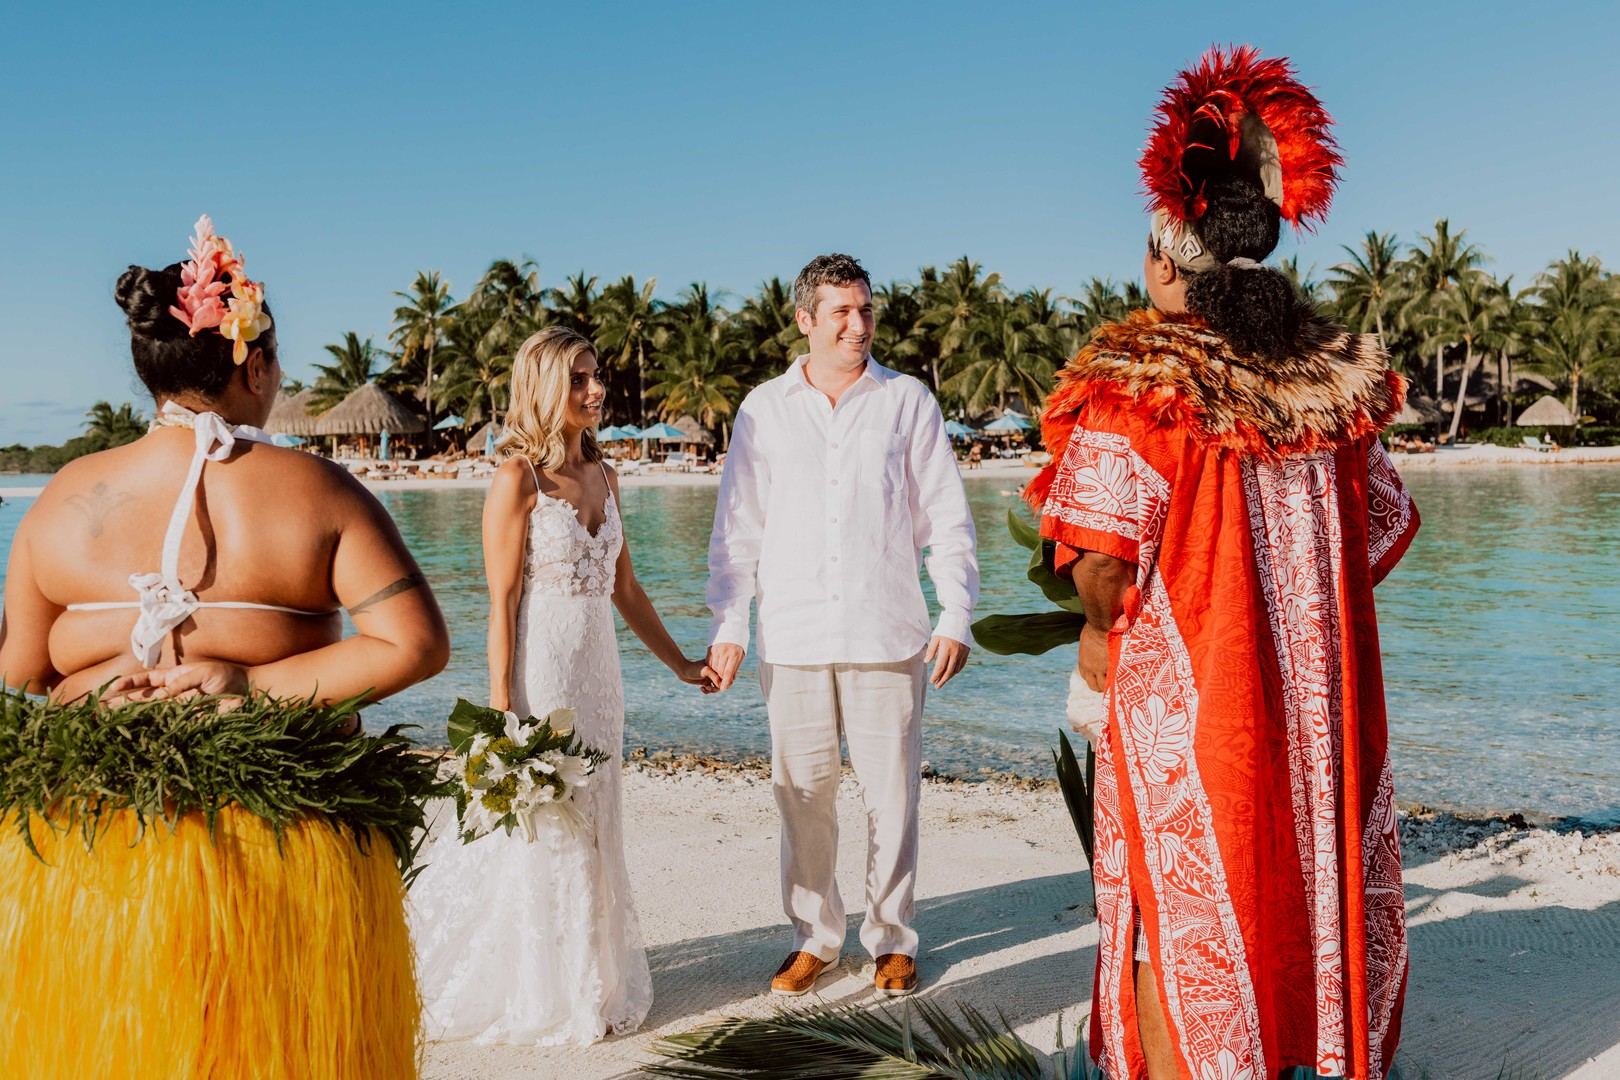 Ceremony of Polynesian wedding